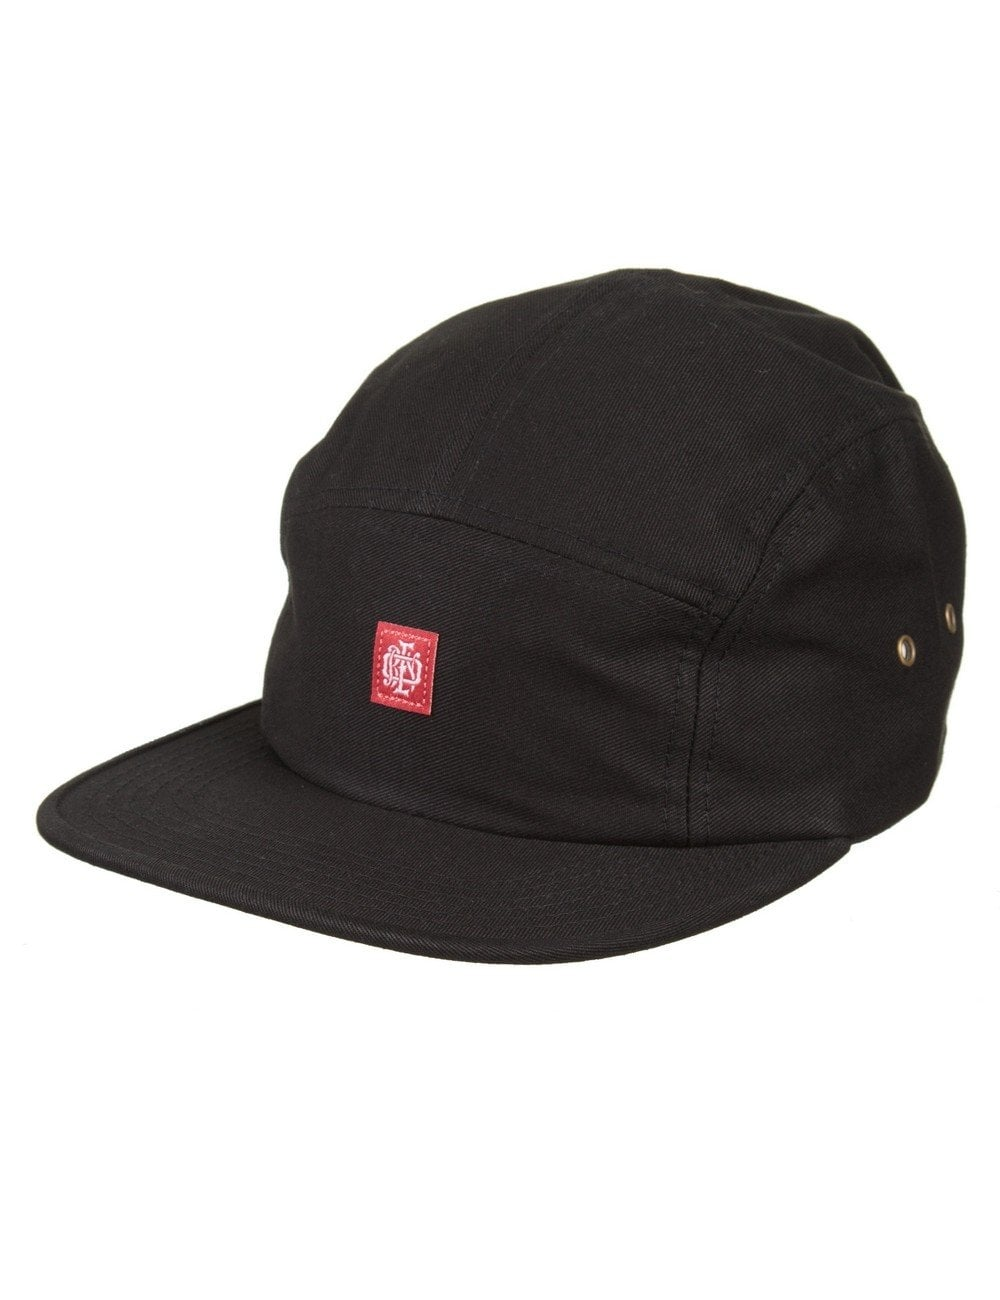 592e189233e Obey Clothing Westchester 5 Panel Hat - Black - Accessories from Fat ...